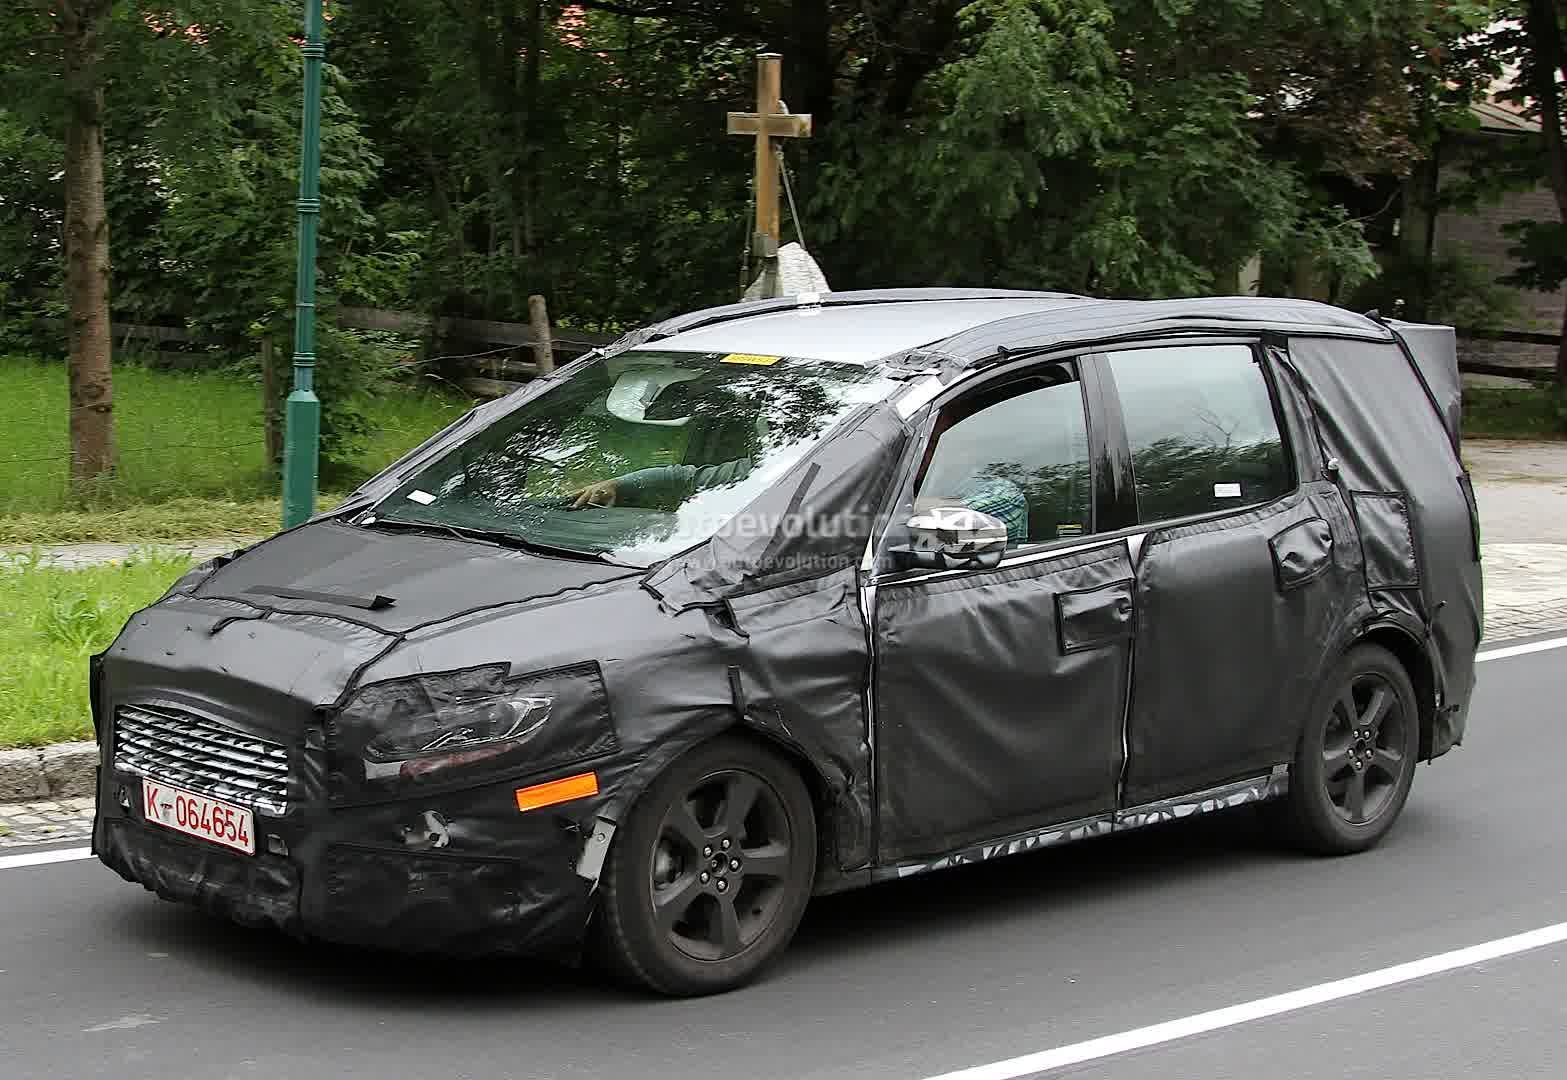 2016 ford galaxy price specs review http futurecarrelease net galaxiesfordhtml